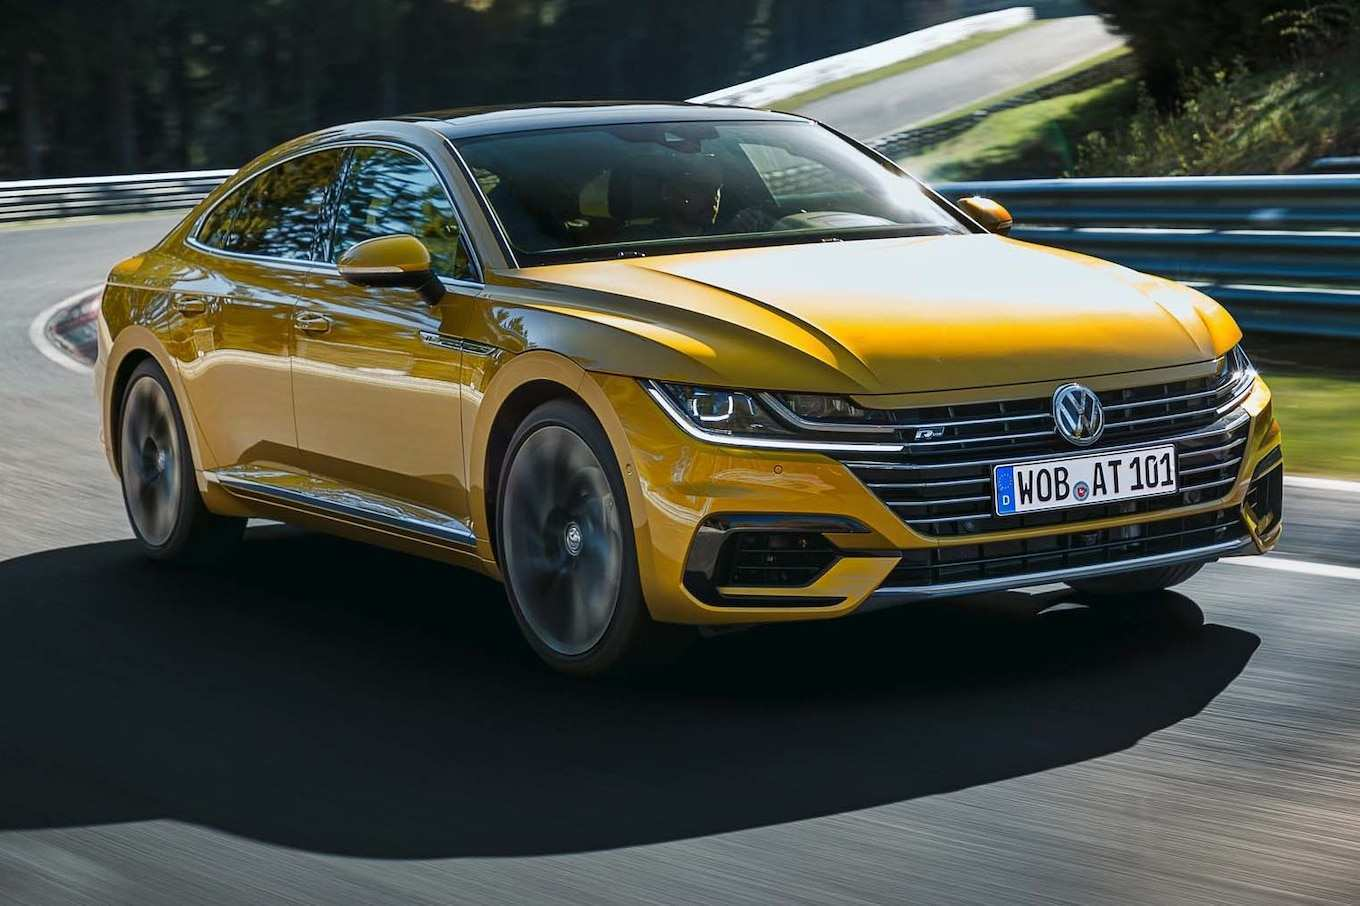 99 The Best Arteon Vw 2019 Redesign And Review